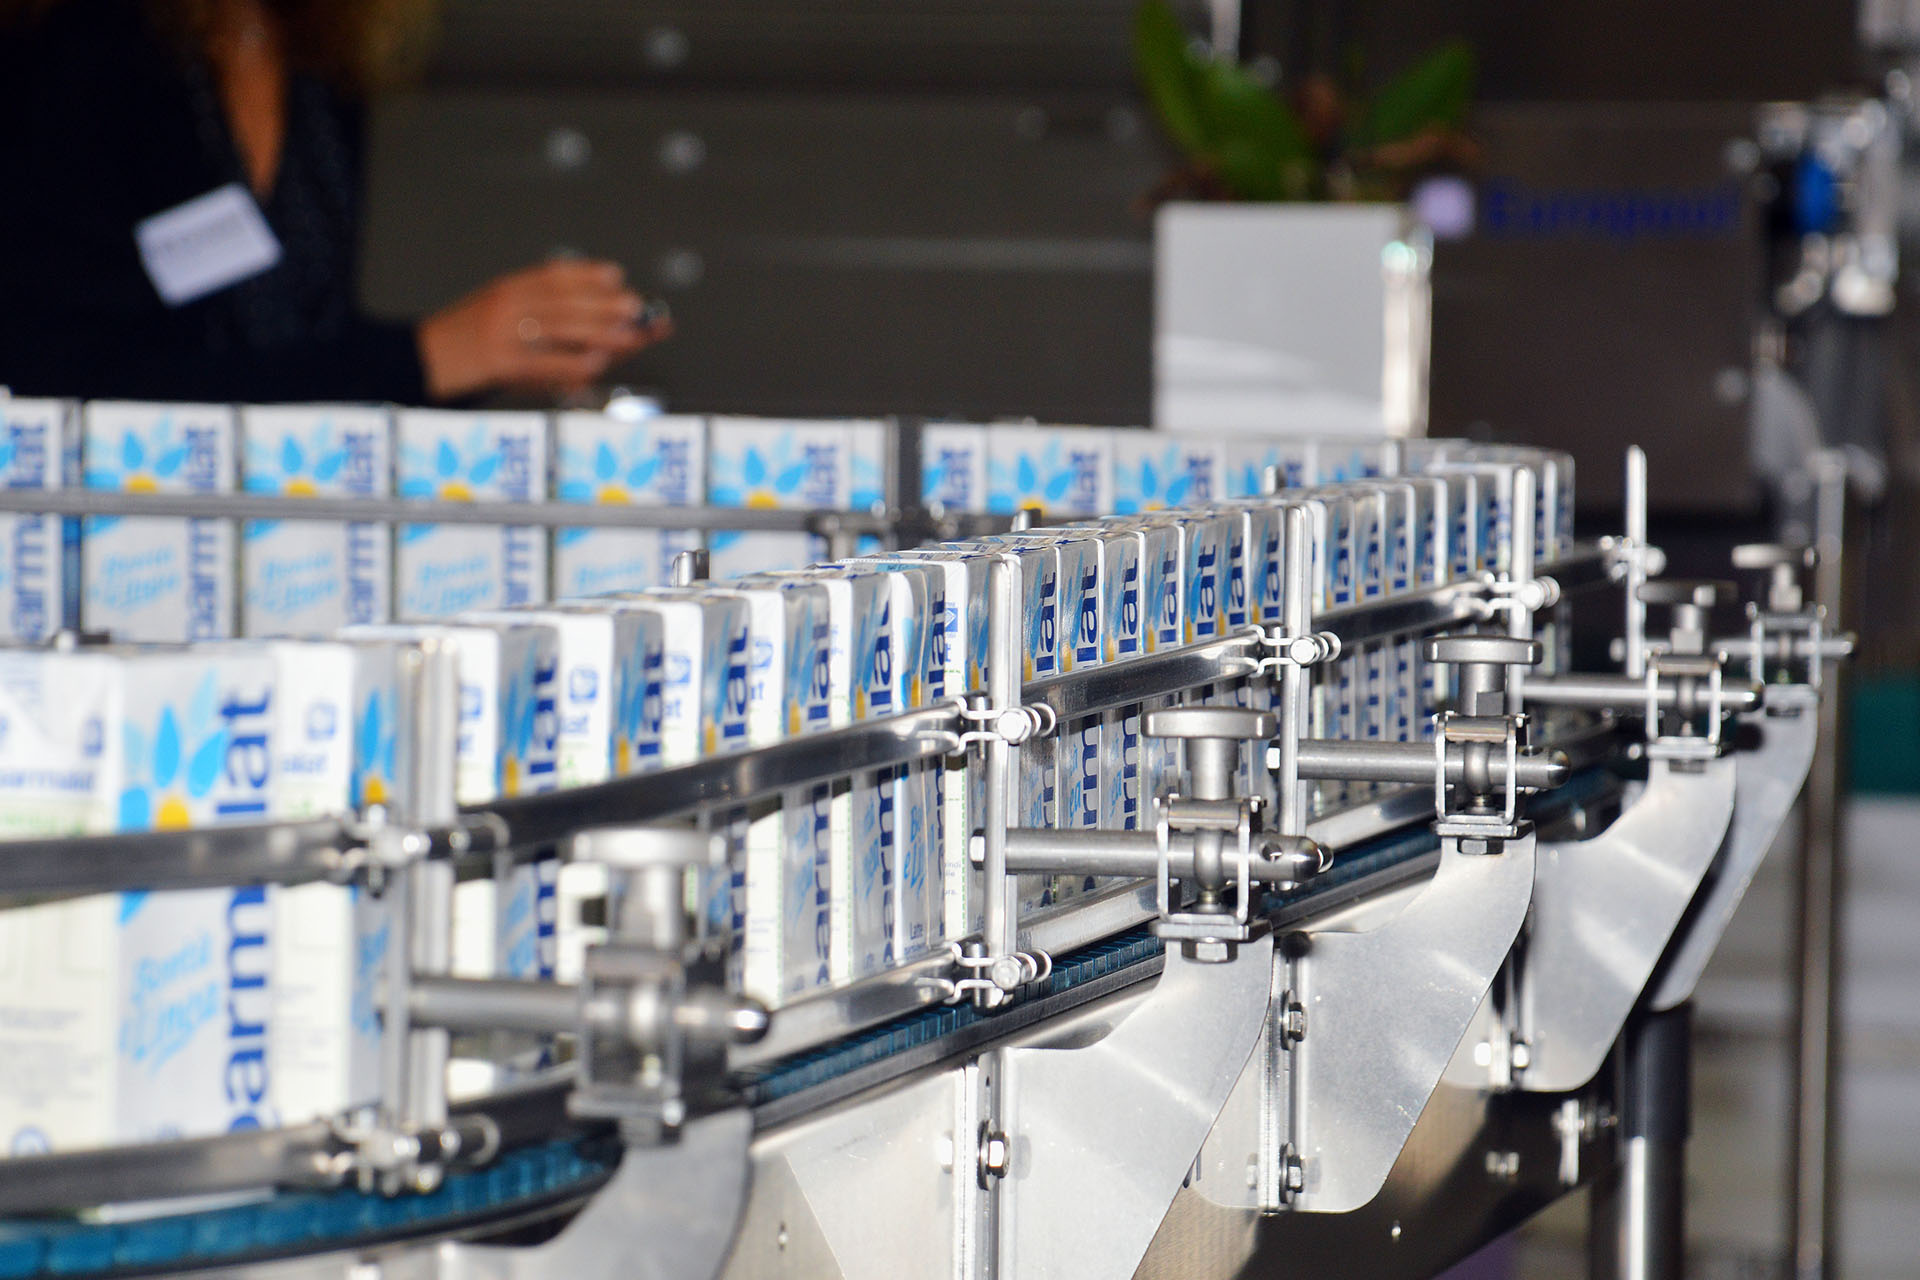 Cartons on a conveyor system